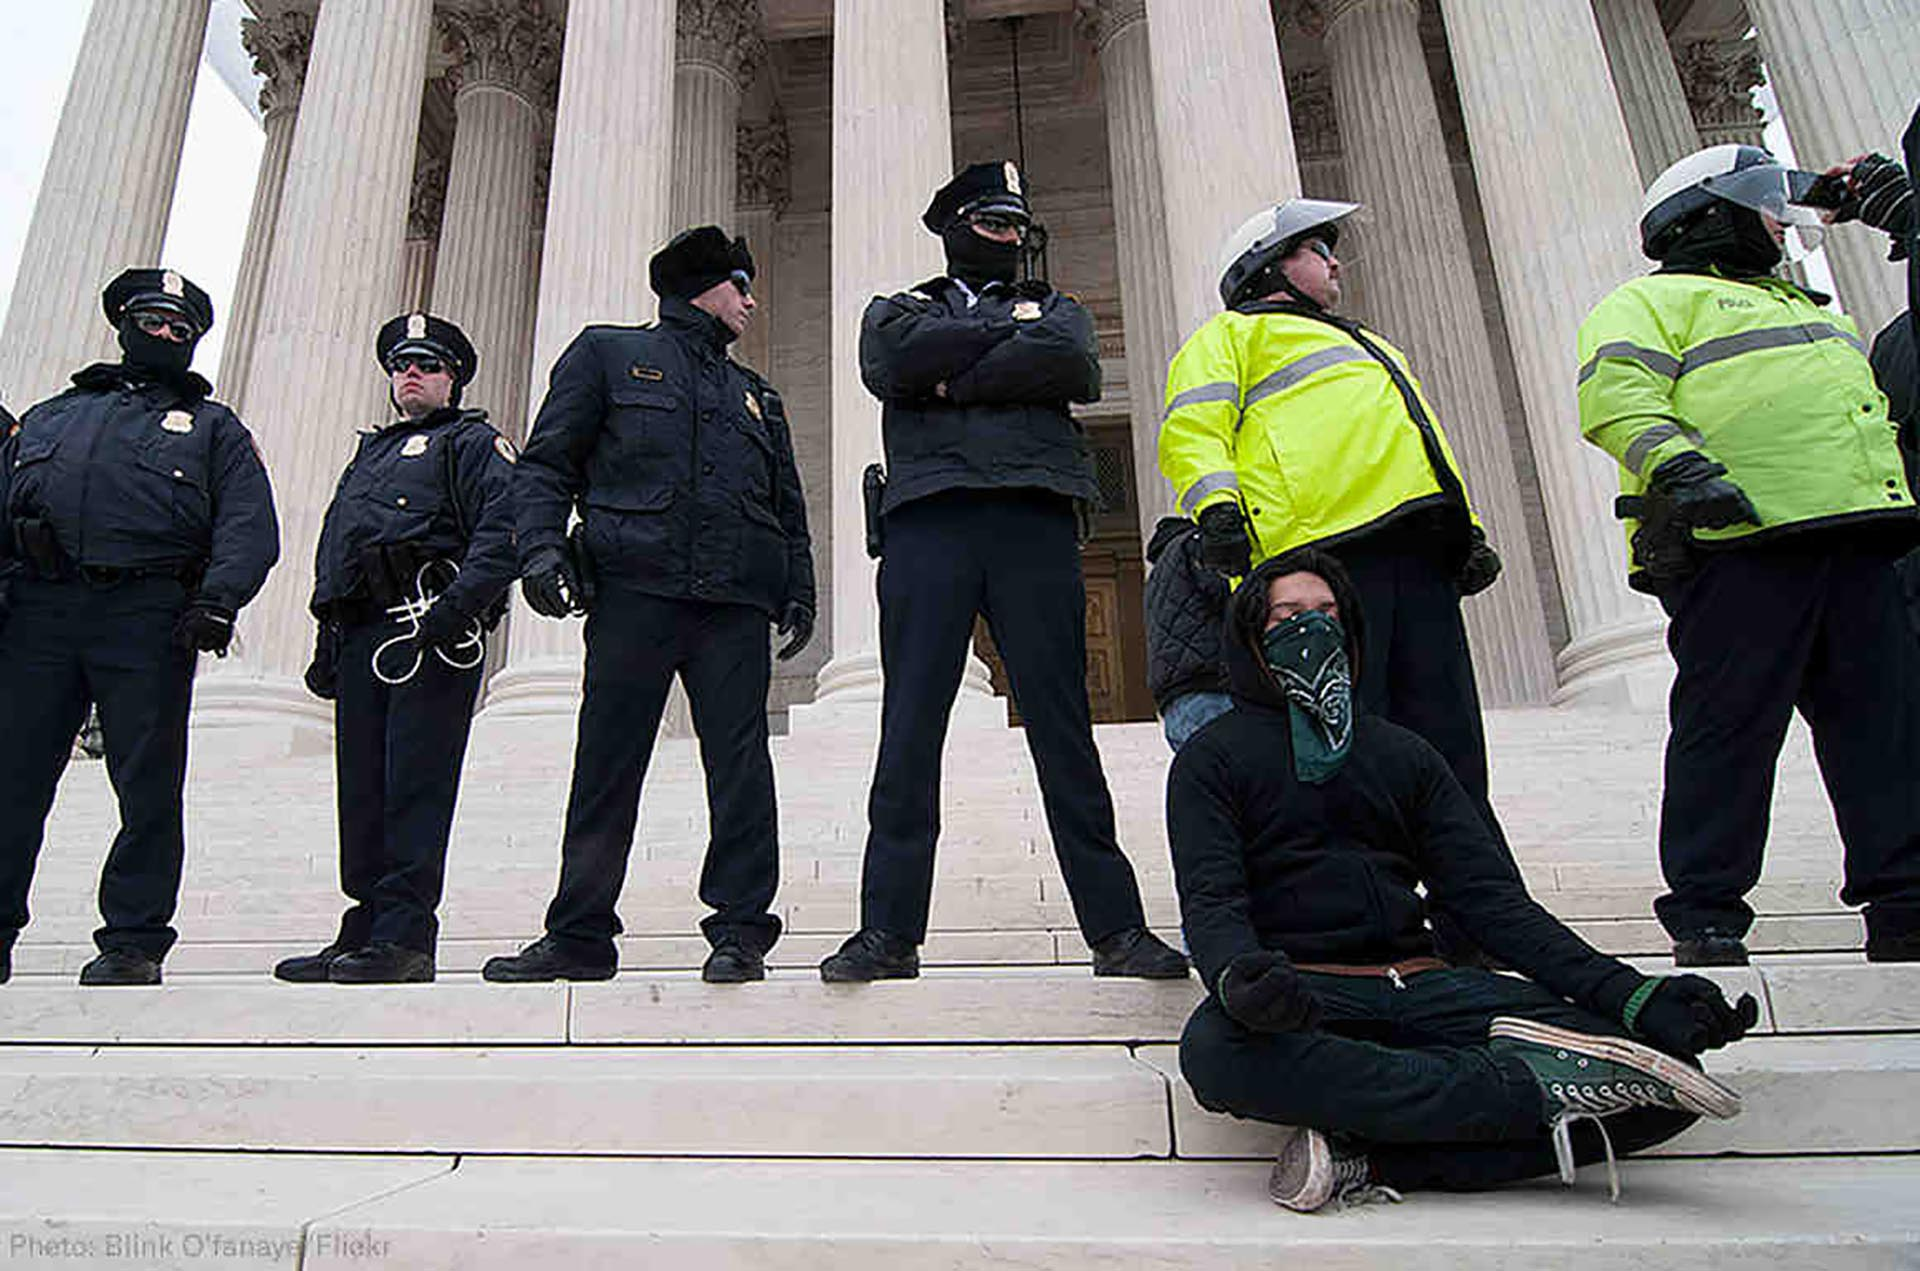 George Floyd and Derek Chauvin and Police Brutality Against Black Men